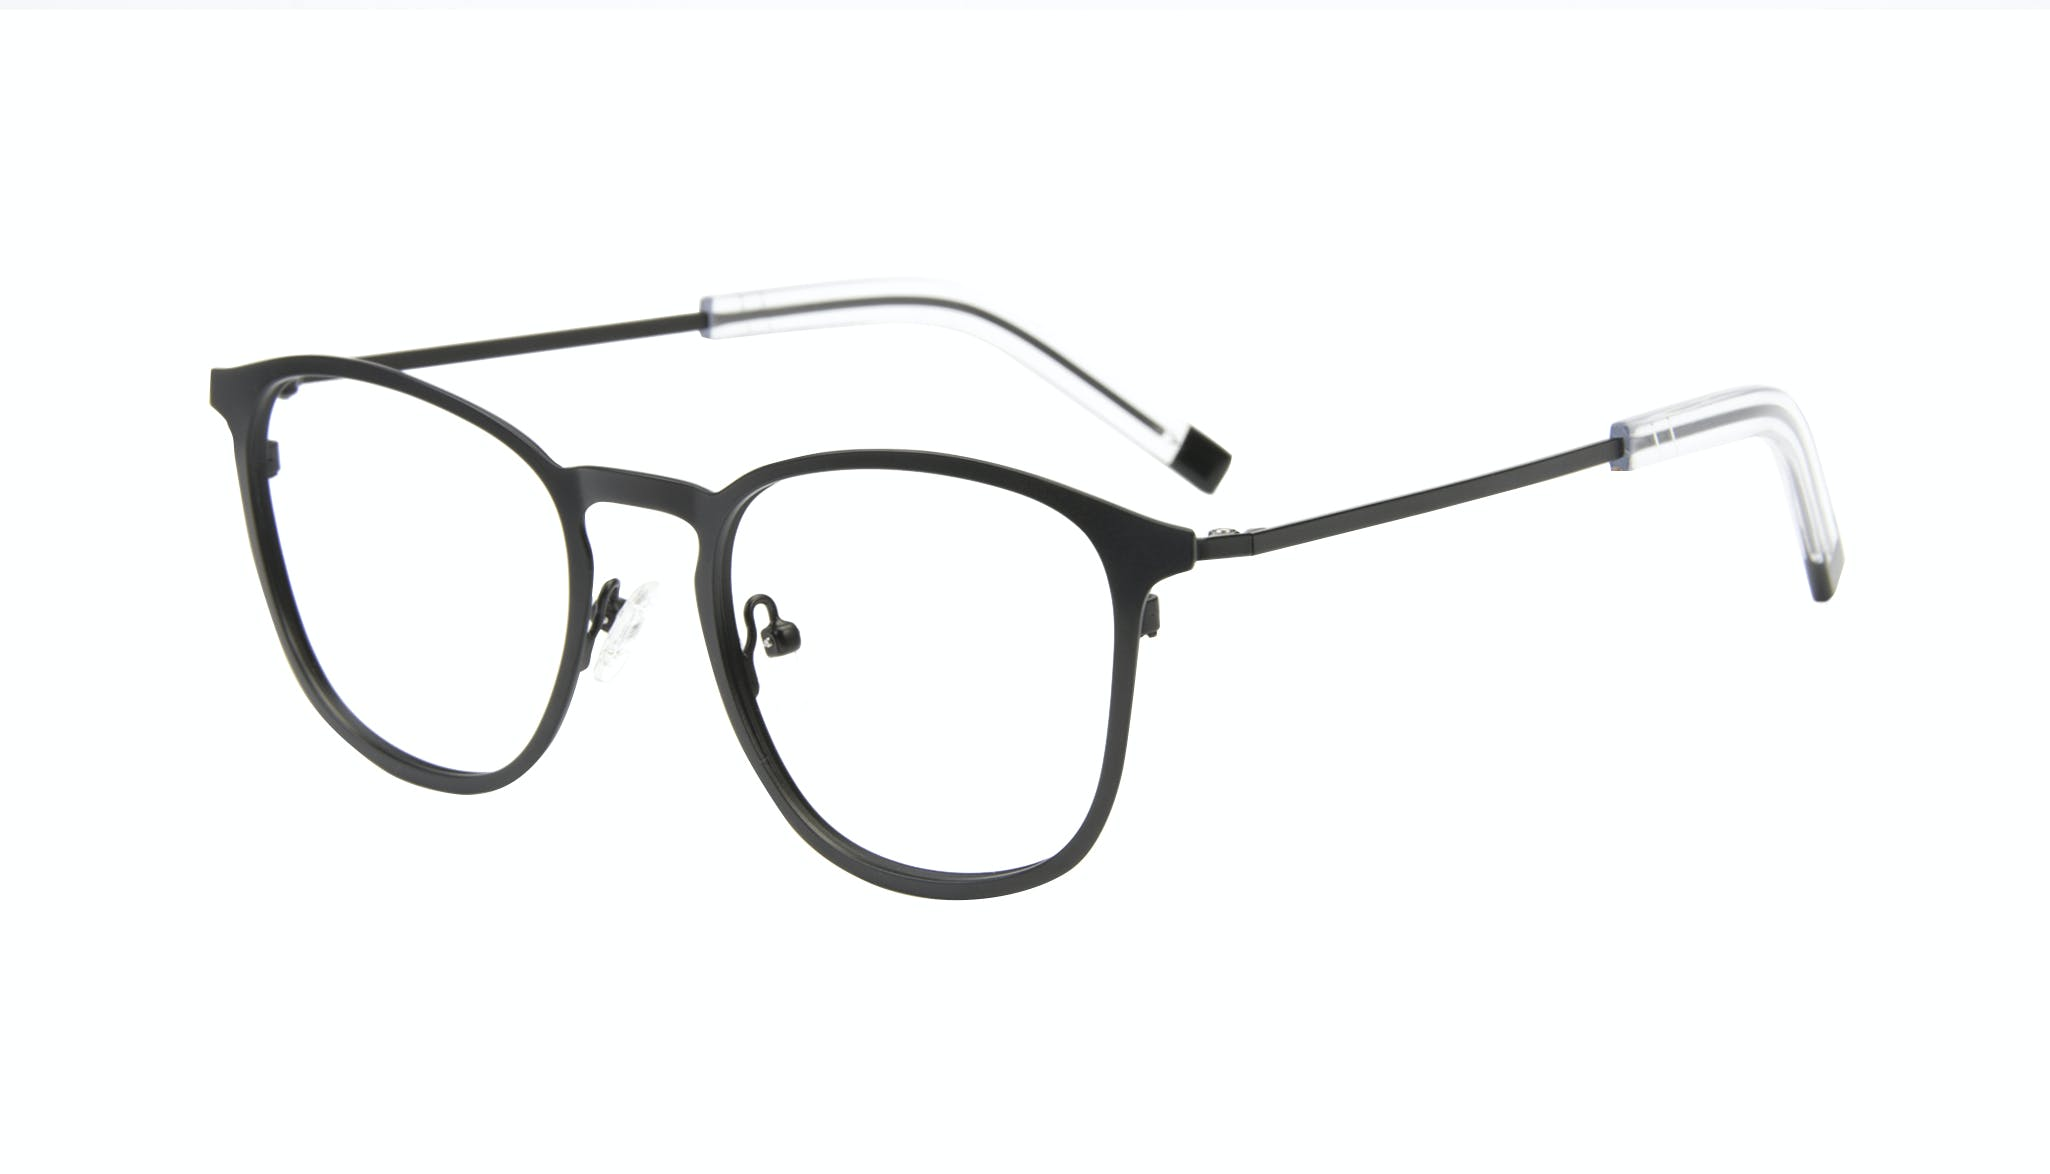 Affordable Fashion Glasses Rectangle Square Eyeglasses Men Core Matte Black Tilt